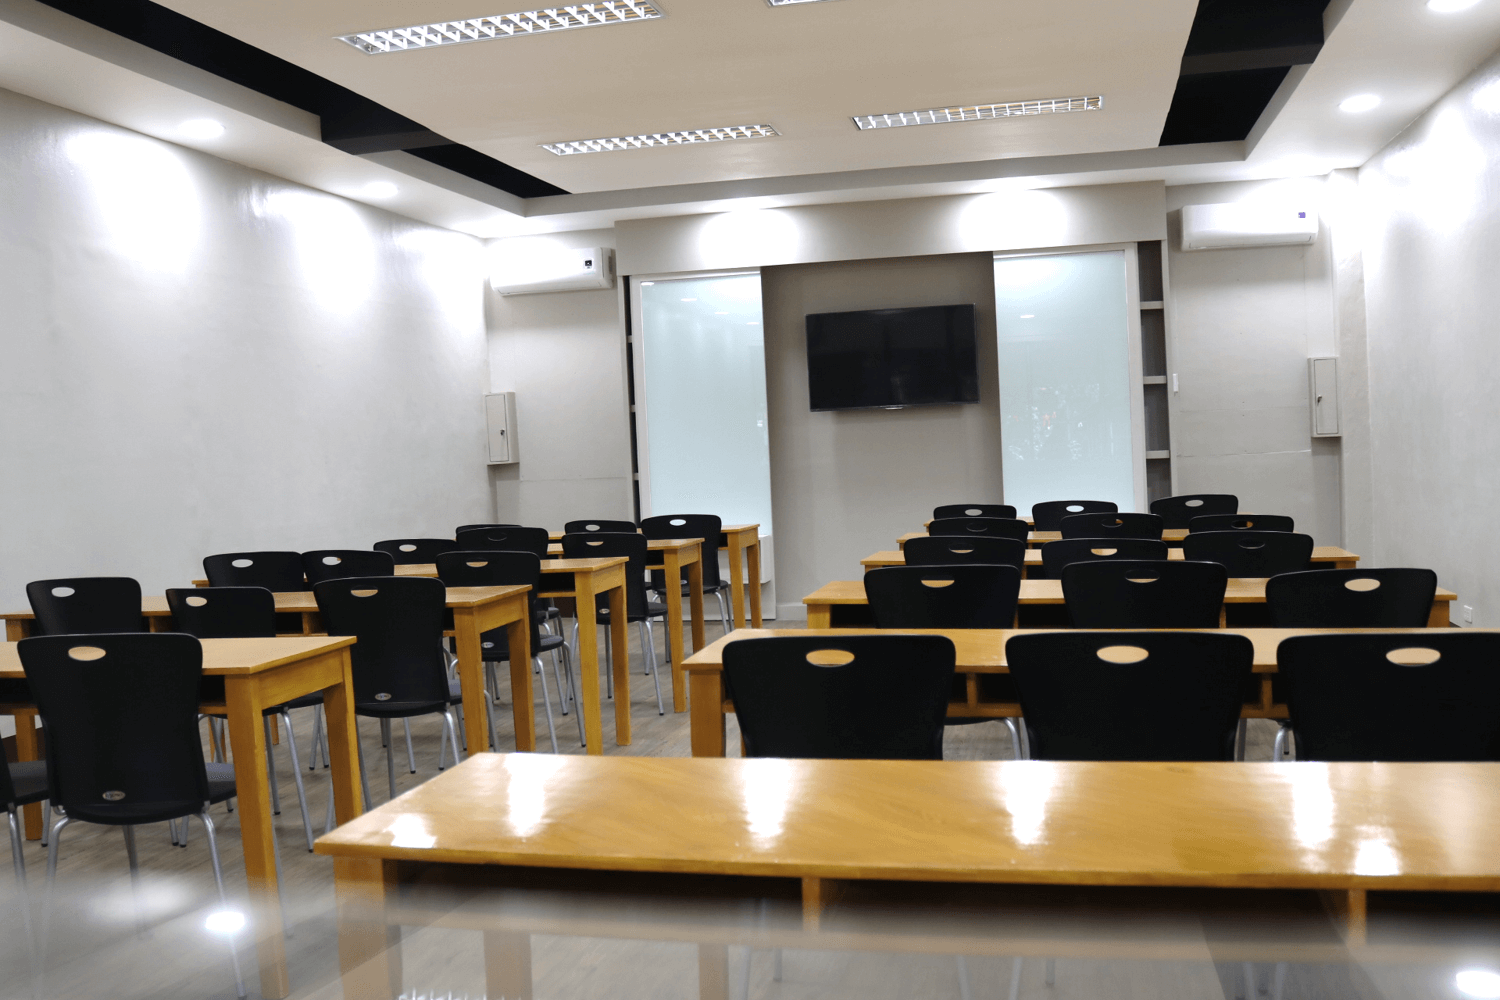 CCE (Center for Continuing Education) Room